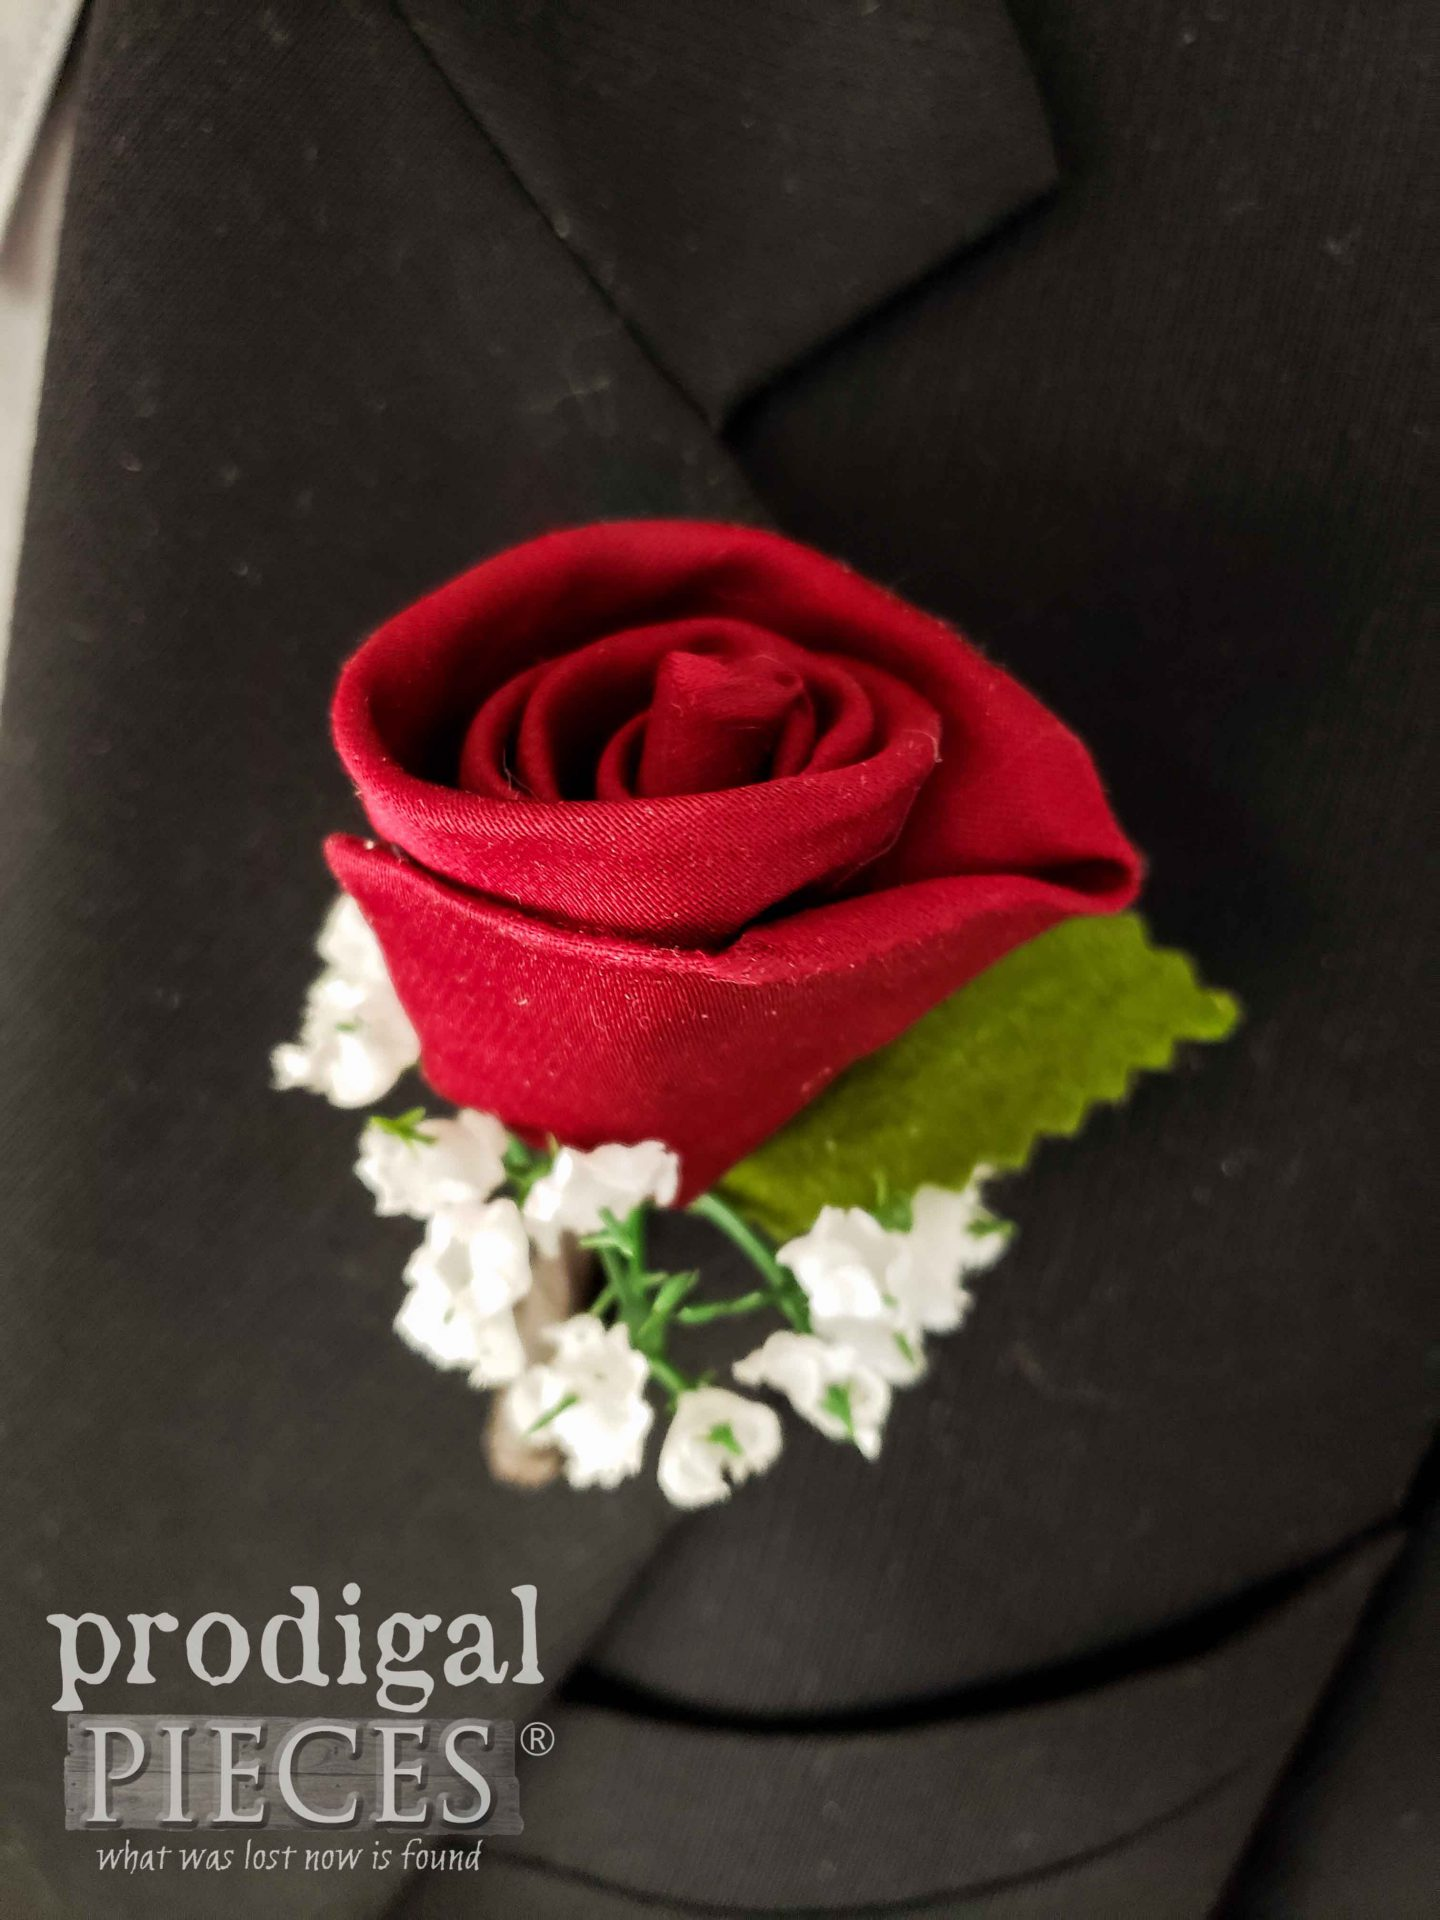 Upcycled Necktie Rosebud Boutonniere Tutorial by Larissa of Prodigal Pieces | prodigalpieces.com #prodigalpieces #rose #fatherday #boutonniere #wedding #accessory